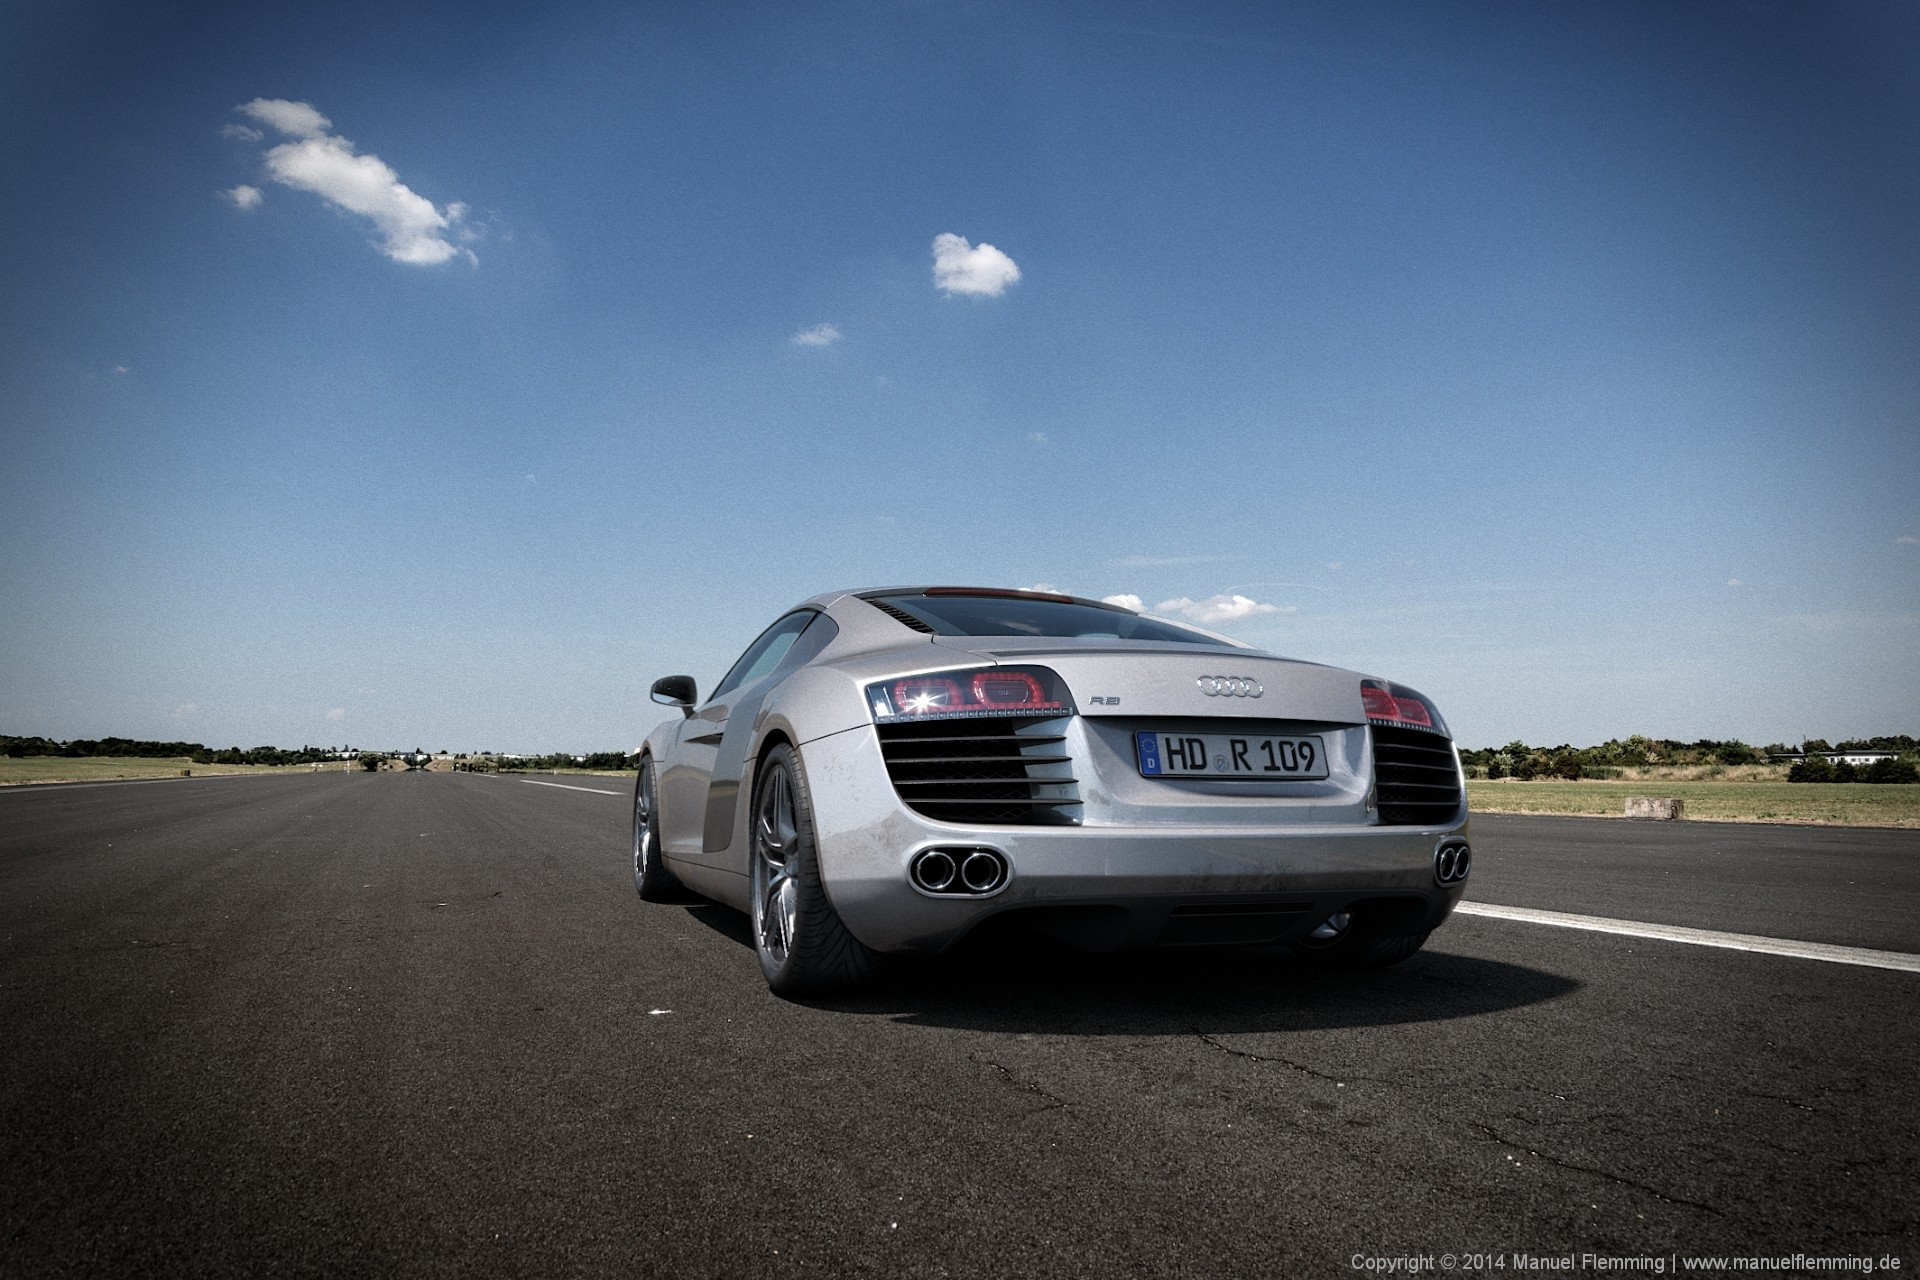 A rendering of an Audi R8 at Airstrip 01 - created using Maya, Mari, Vray and Nuke. I'm responsible for HDRI & Plate photography, texturing, shading, lighting, rendering and compositing.